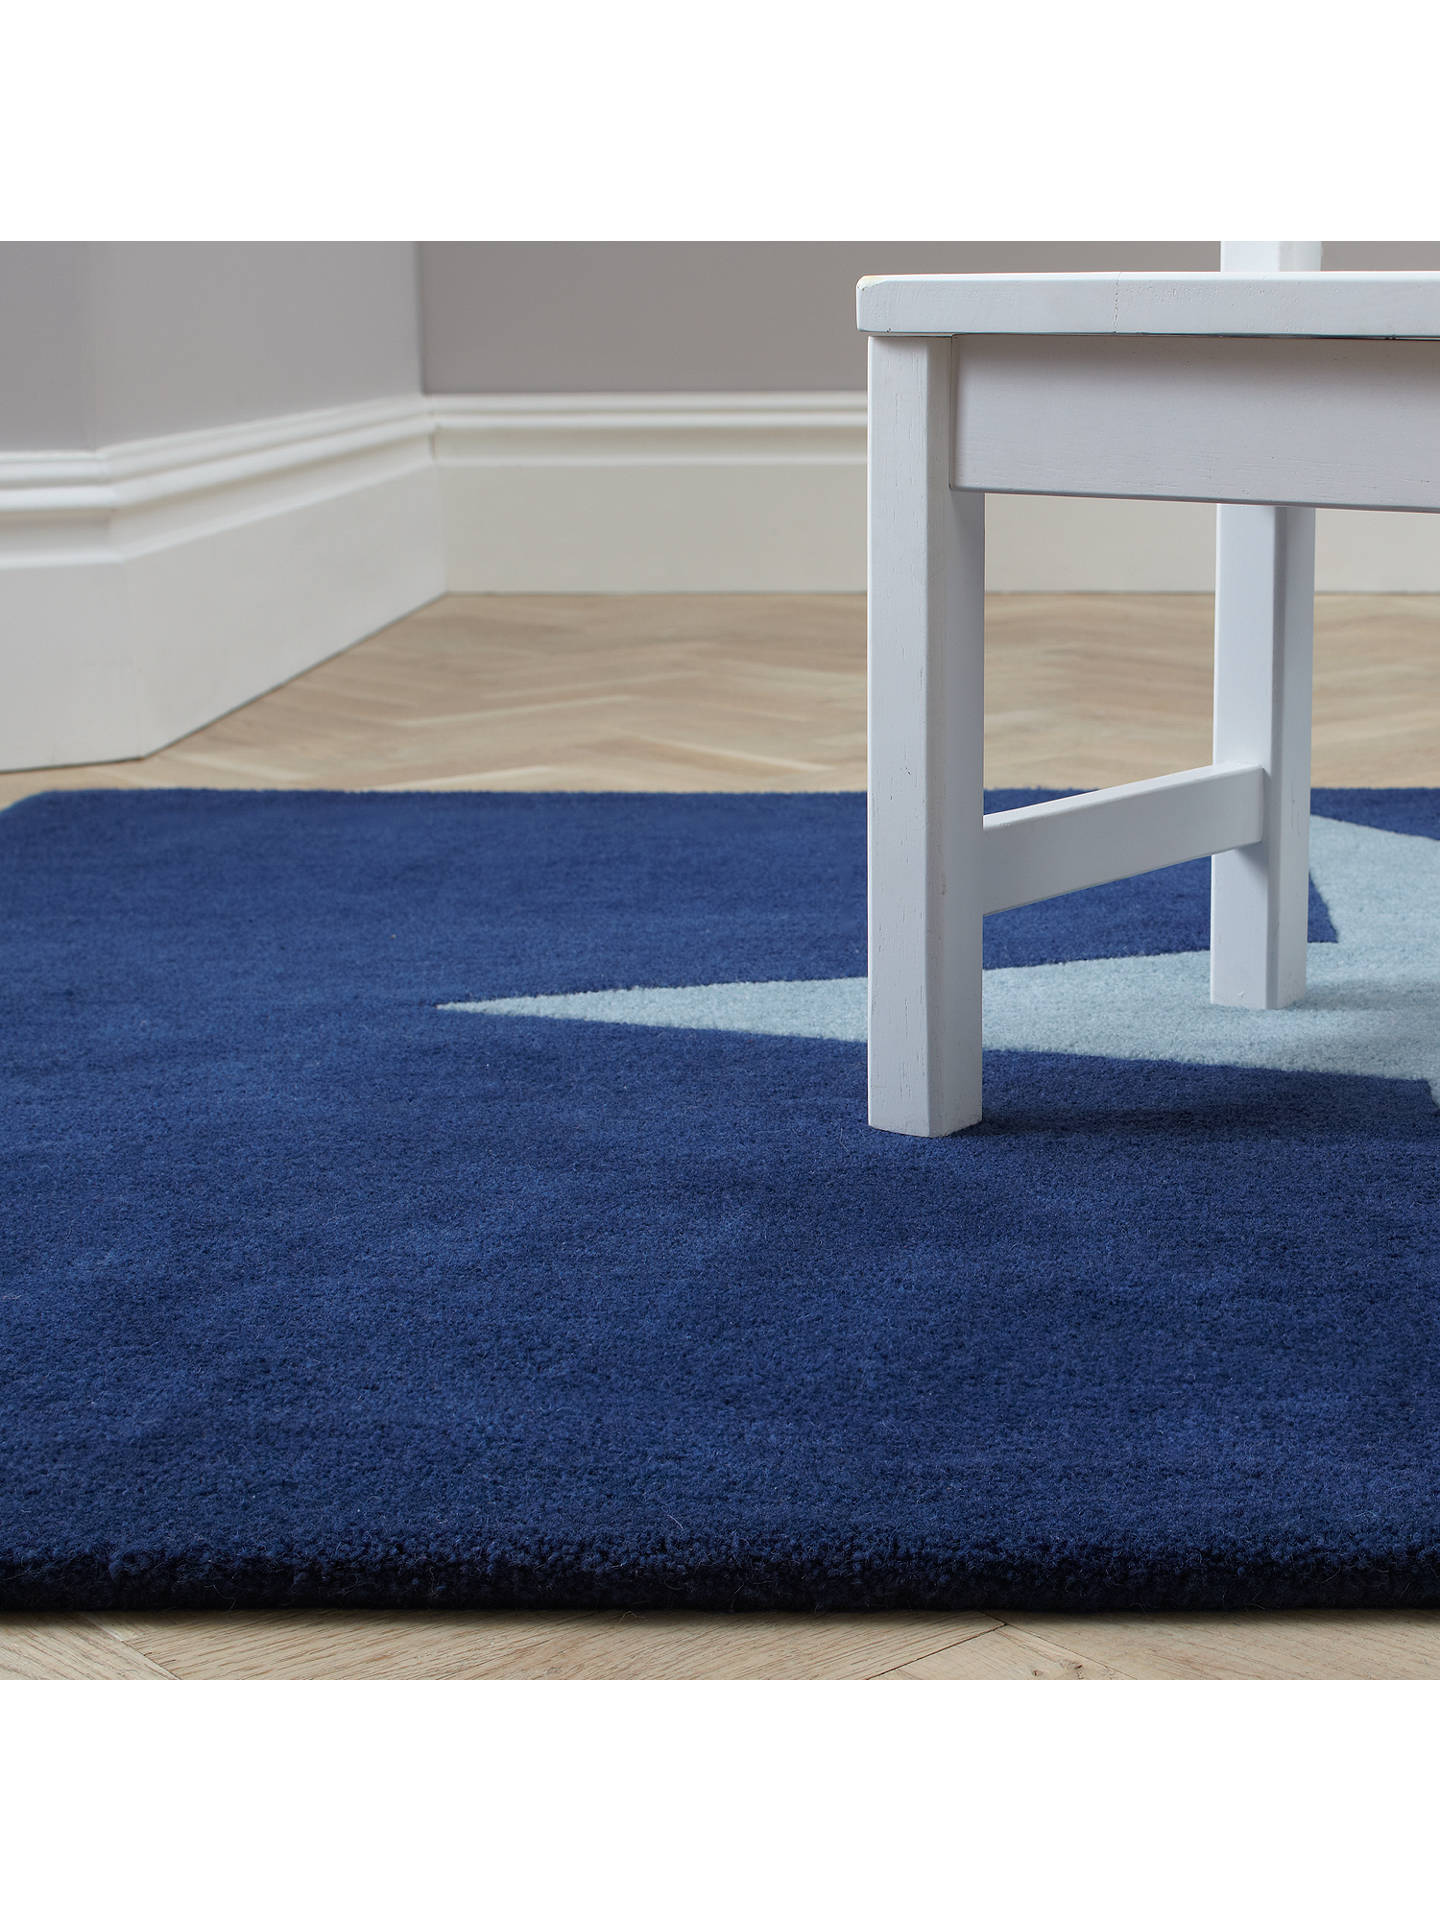 Buy little home at John Lewis Star Children's Rug, Blue, L170 x W110cm Online at johnlewis.com